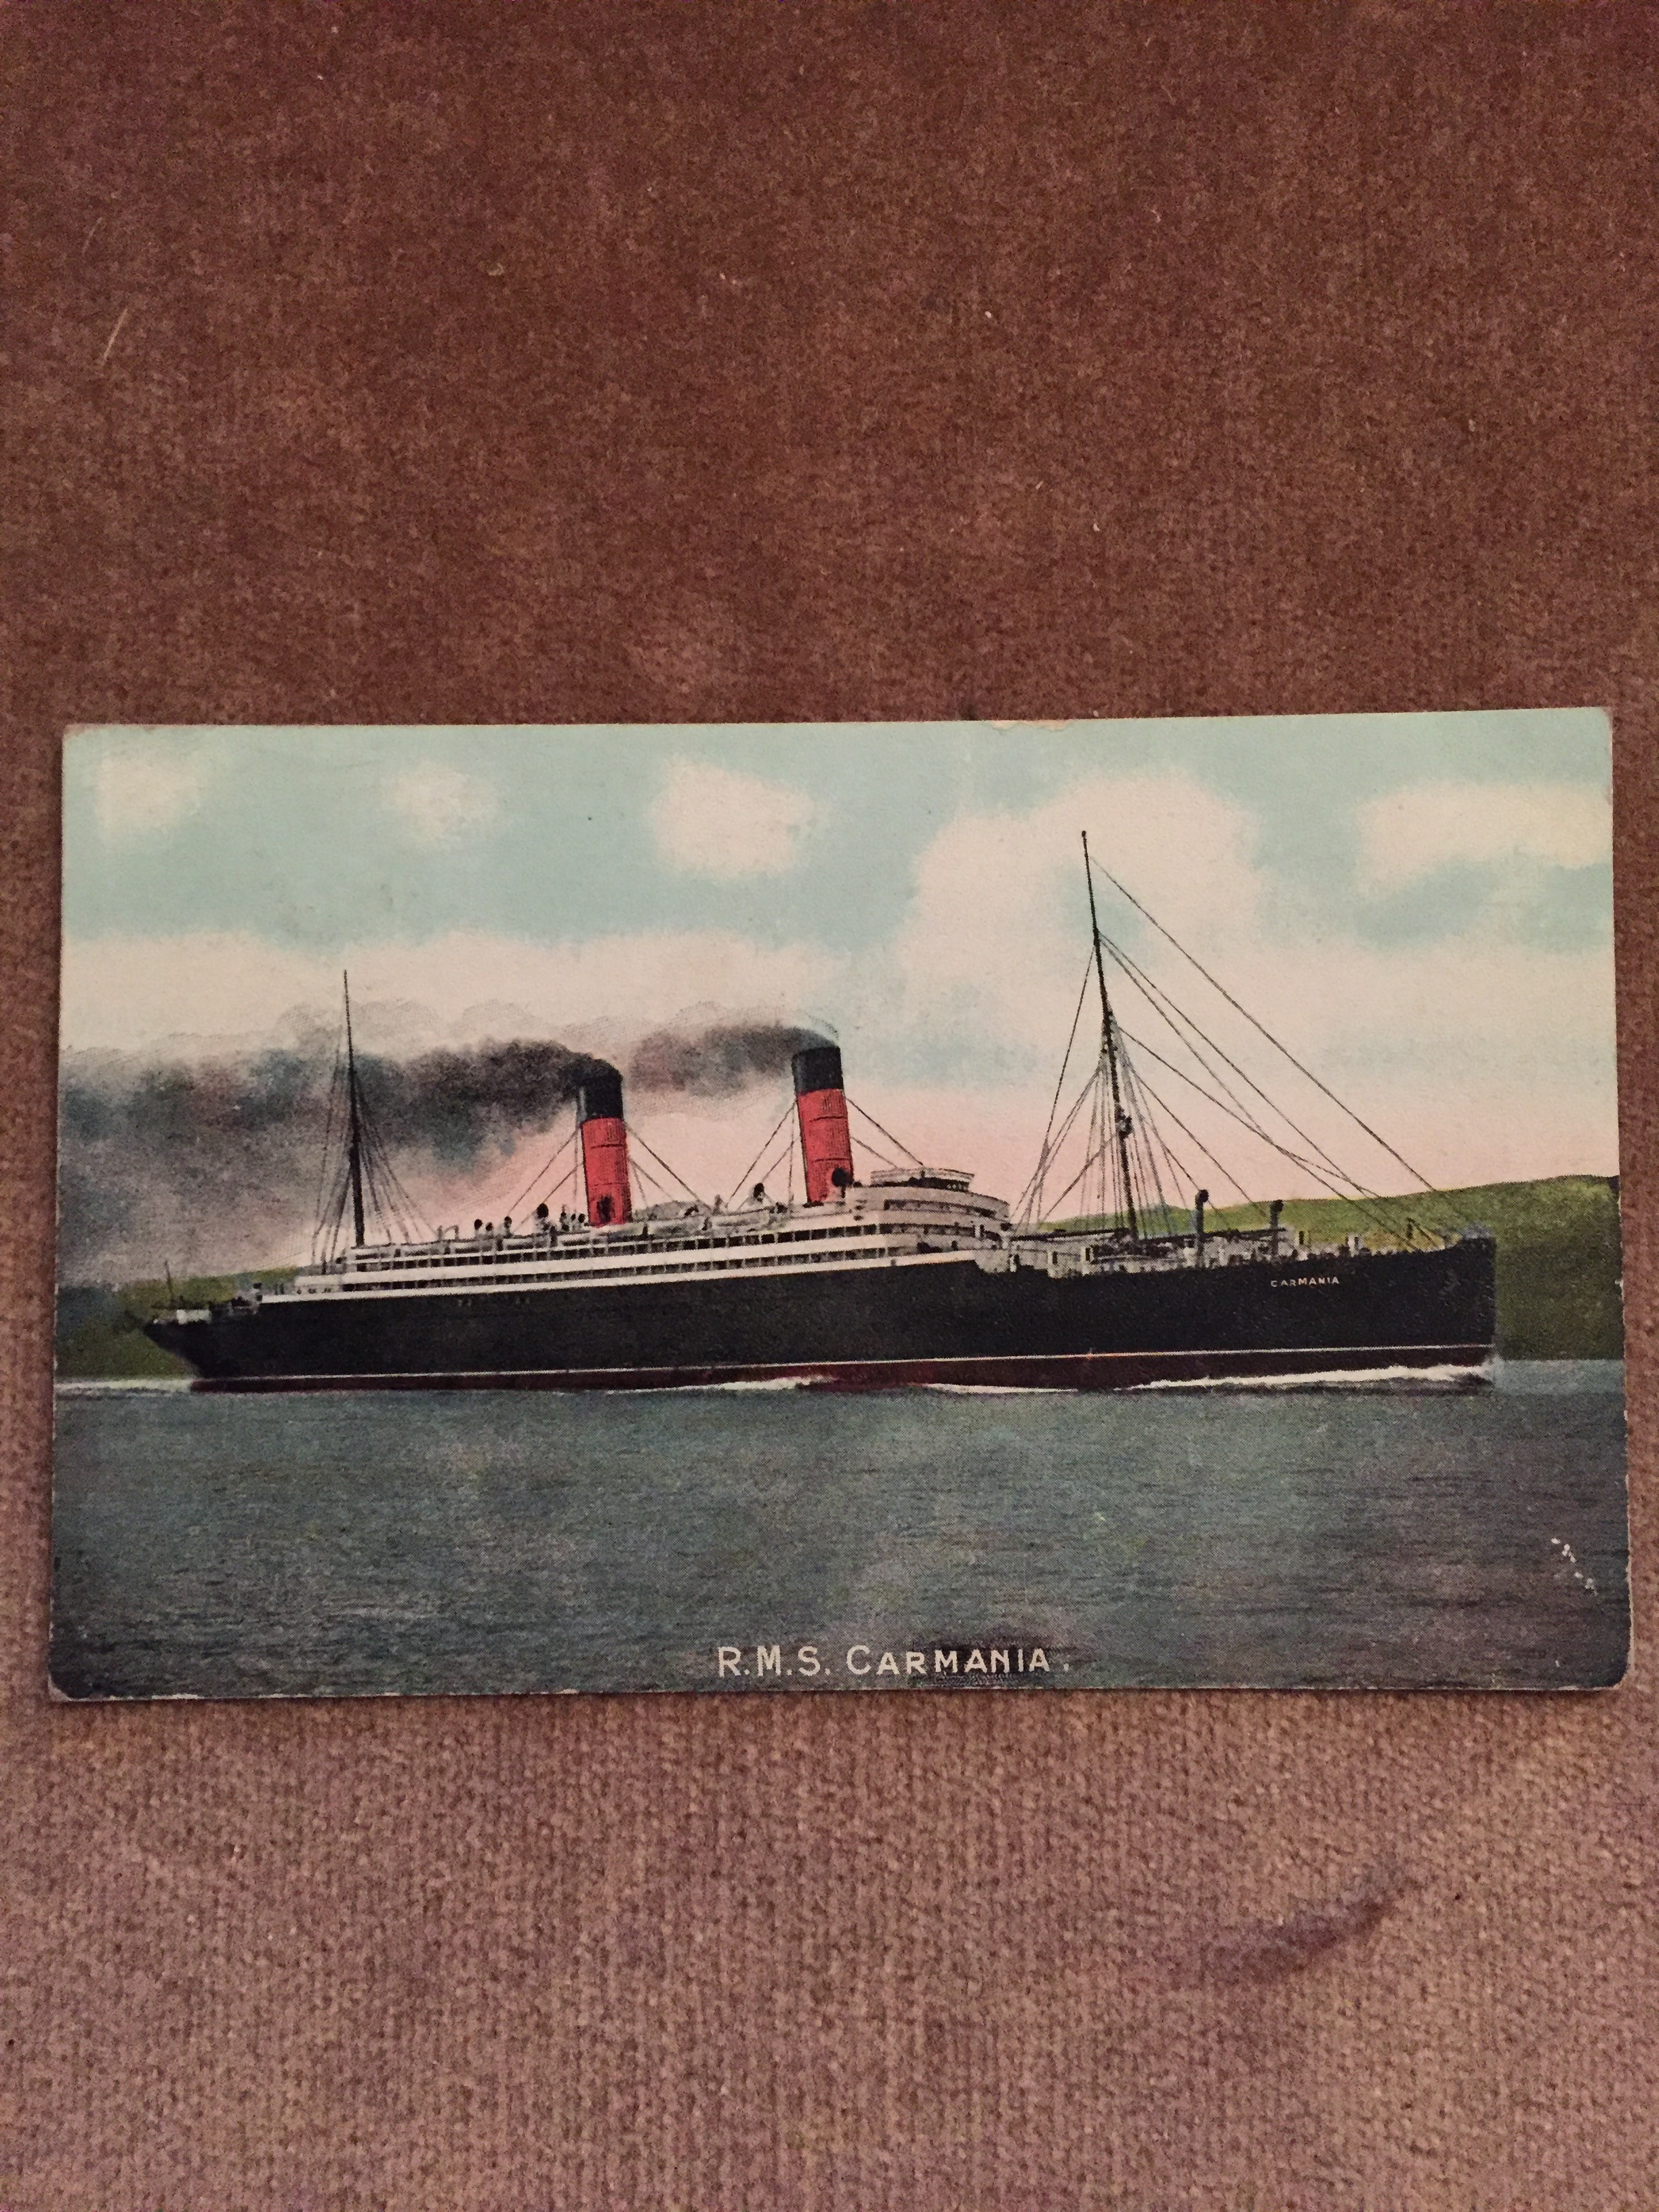 USED COLOUR POSTCARD FROM THE OLD CUNARD LINE VESSEL THE RMS CARMANIA